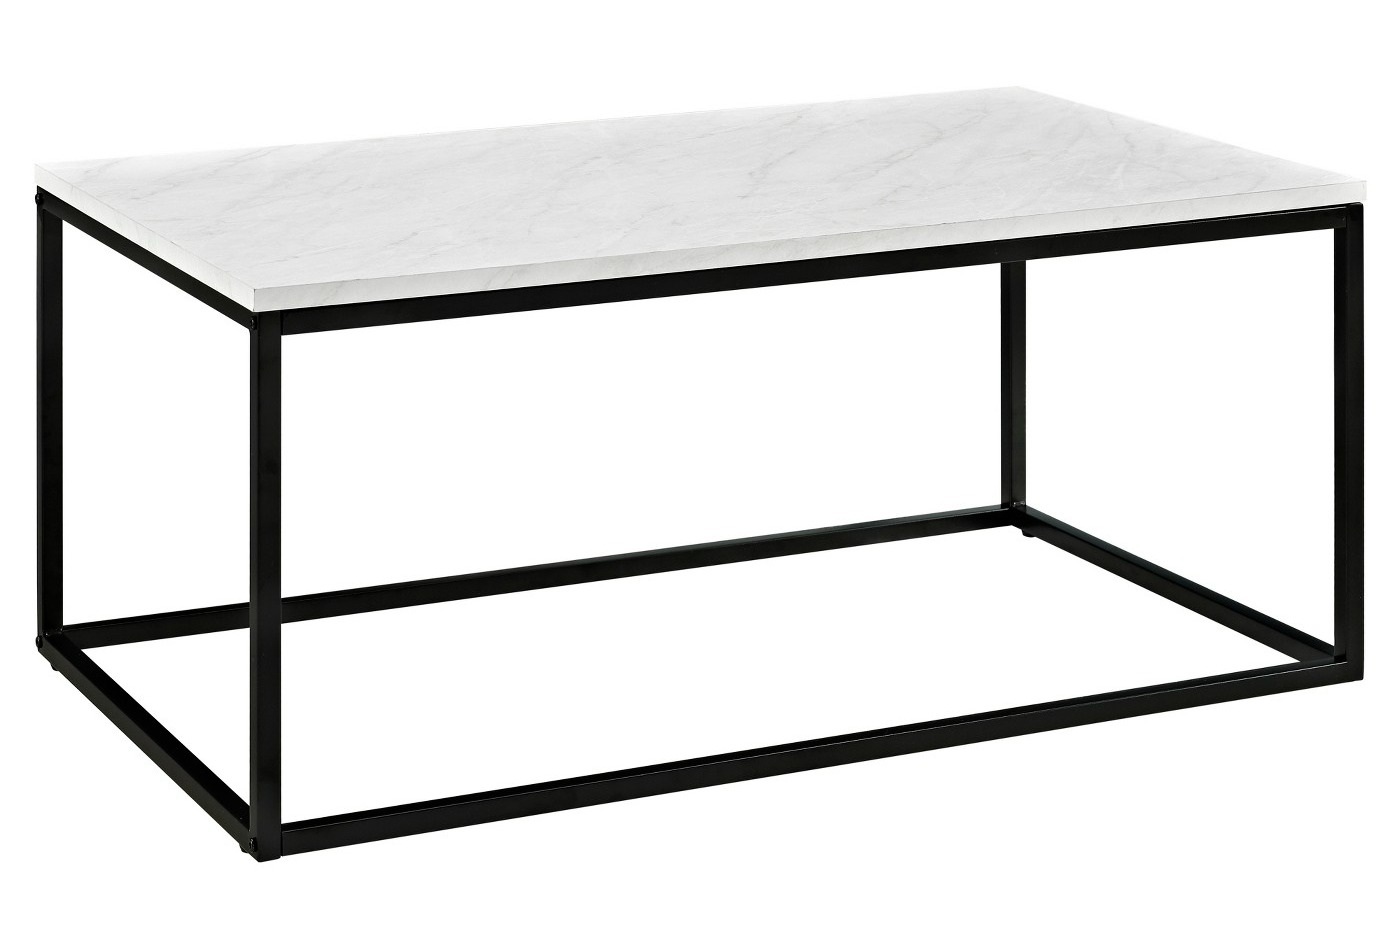 Faux marble black base coffee table